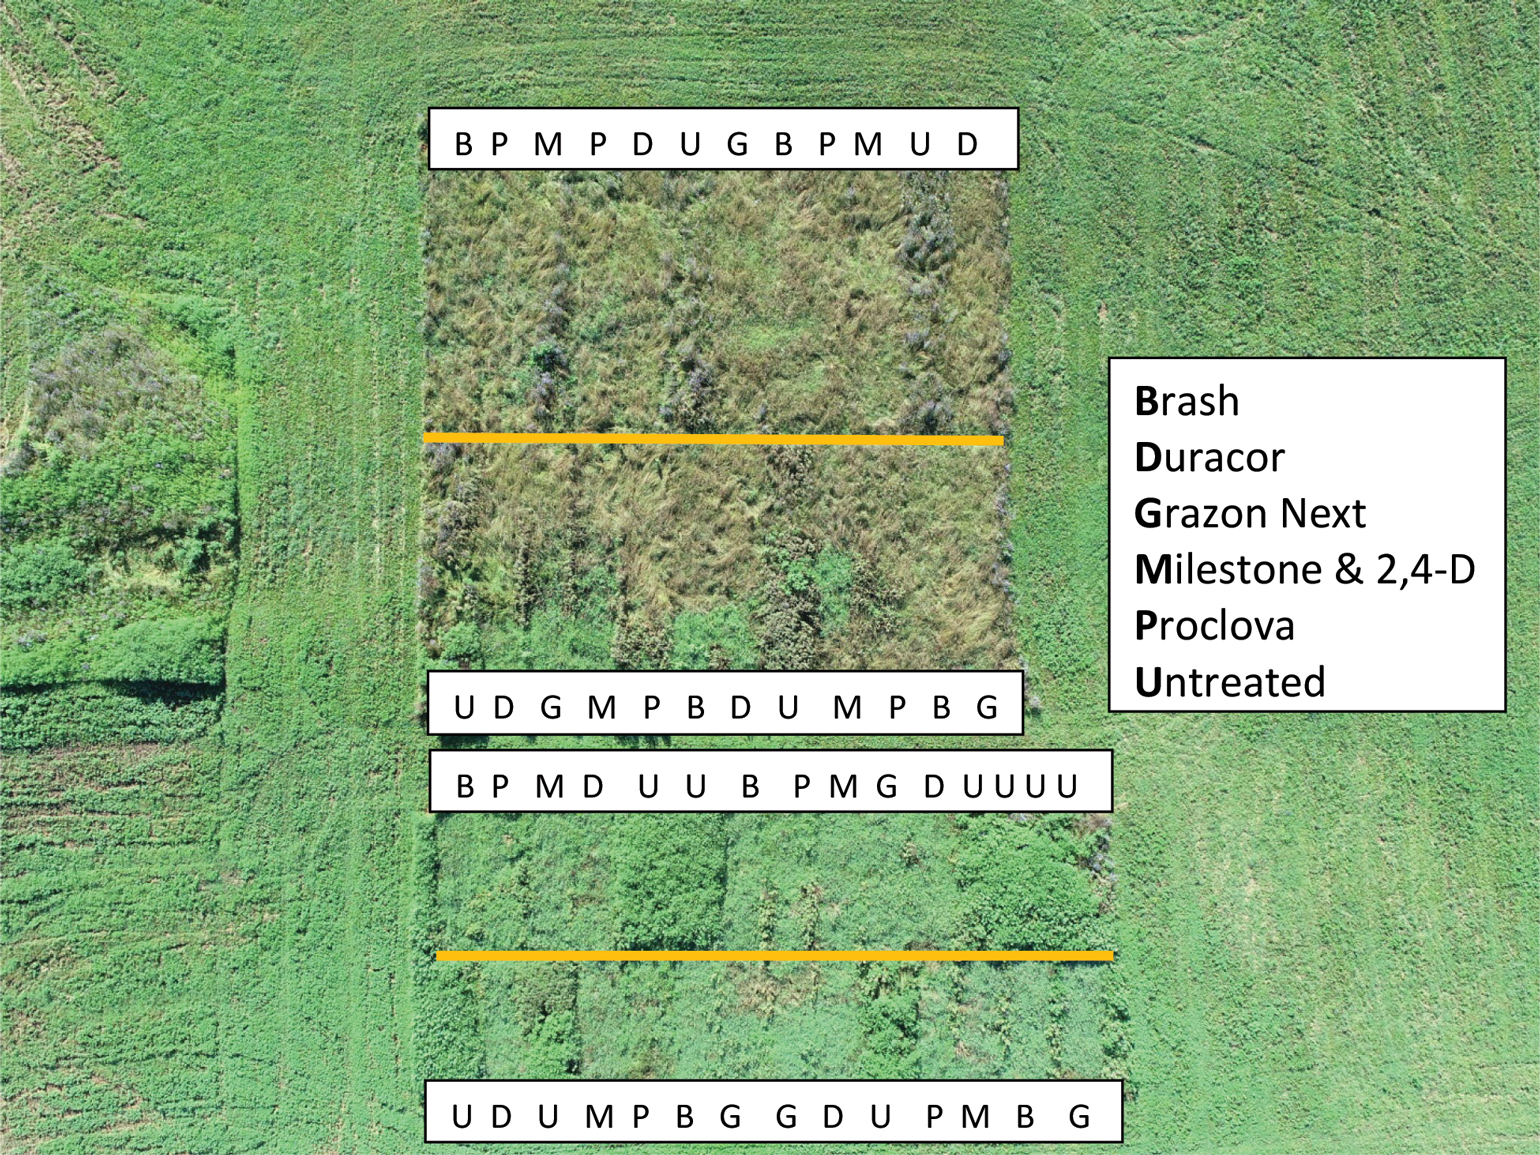 aerial view of pasture weed control project